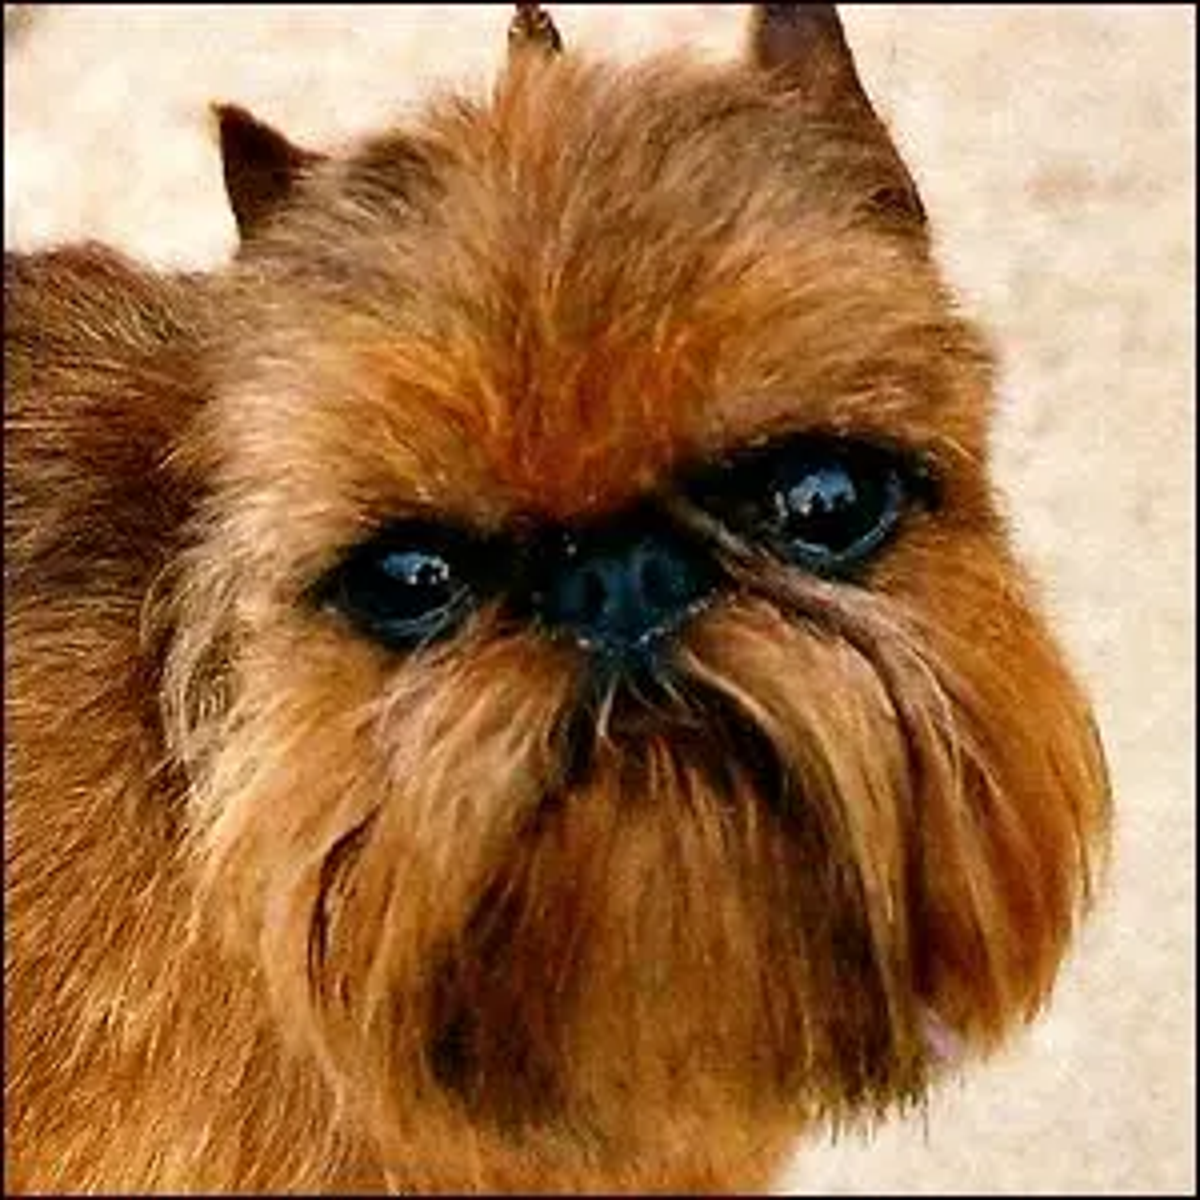 A brown Griffon Bruxellois with beard and cropped ears.